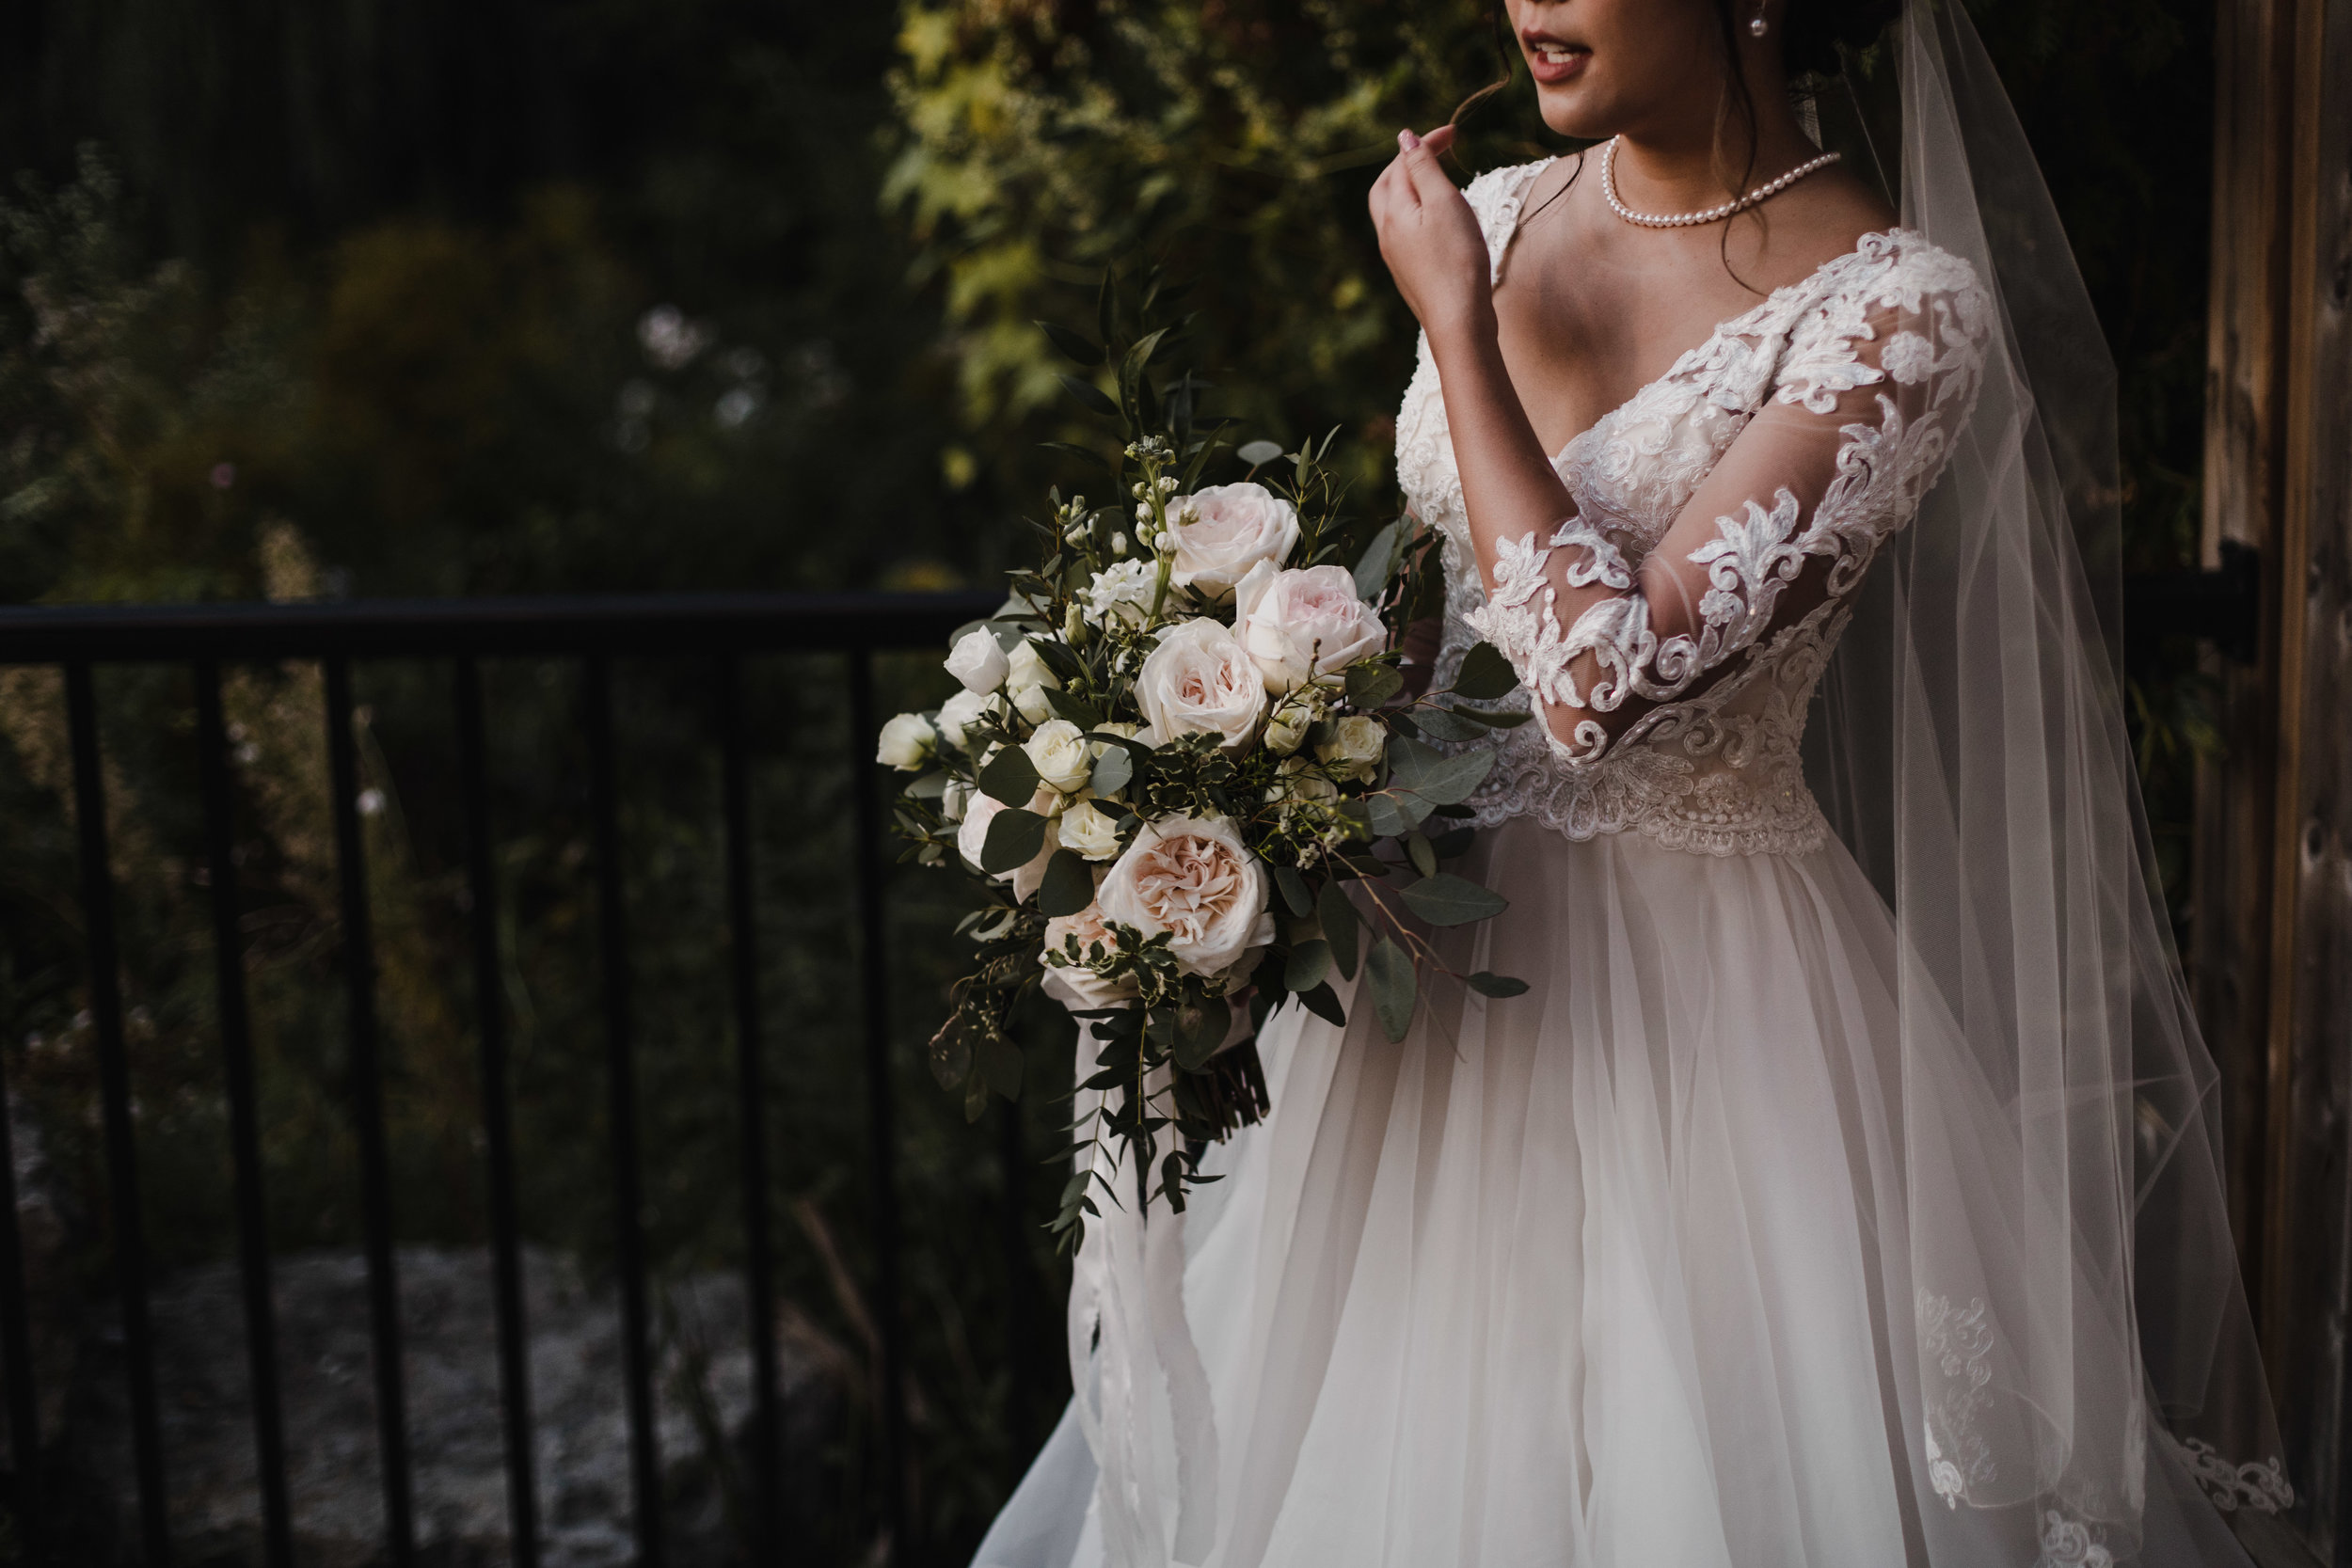 Lace Sleeves on Wedding Dress